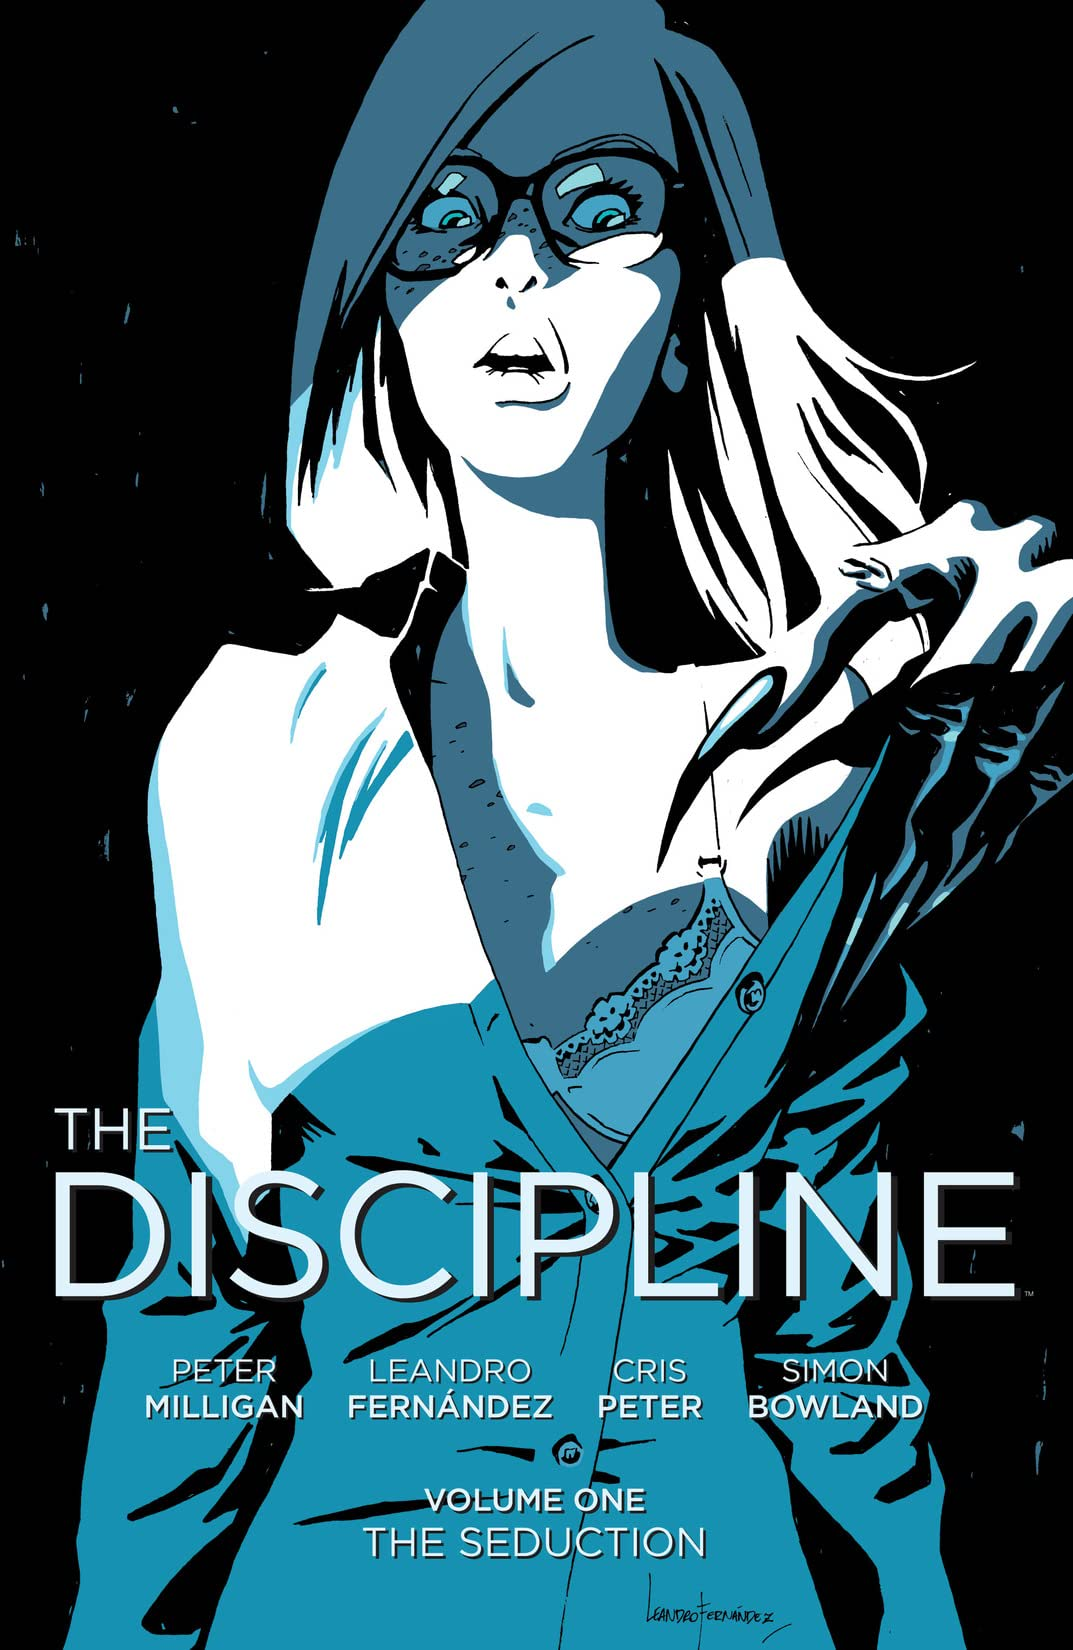 The Discipline Vol. 1